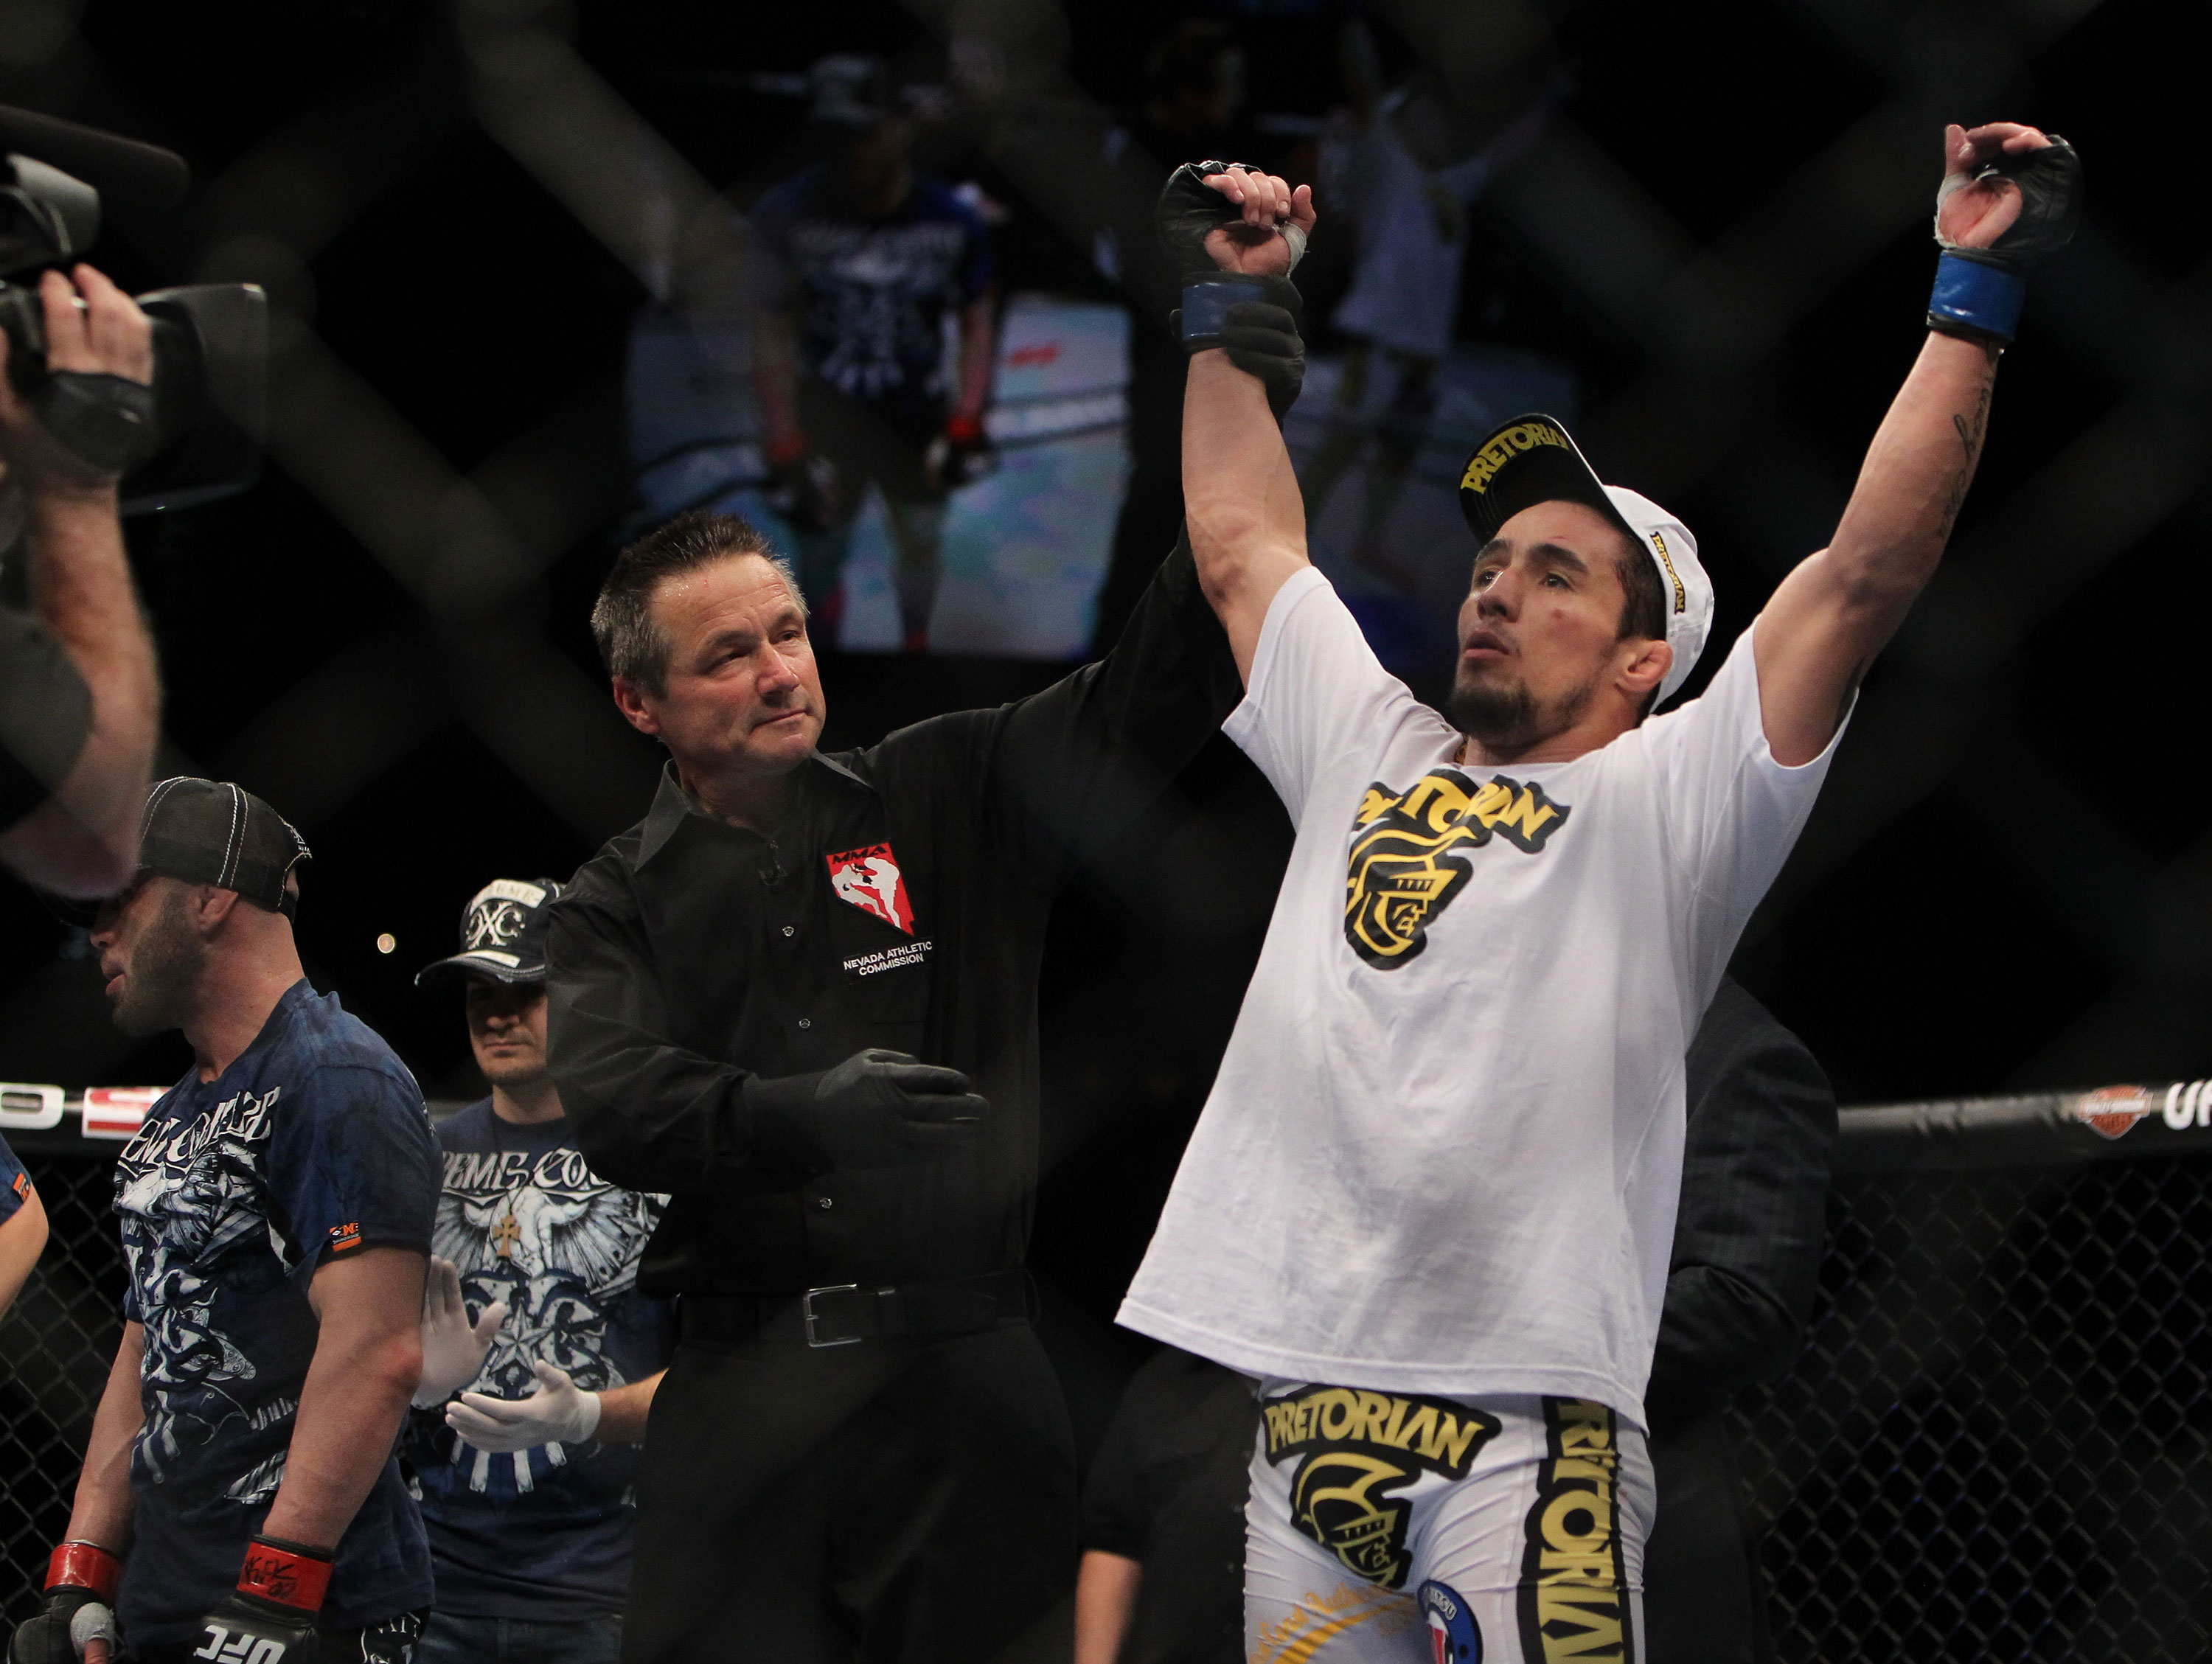 LAS VEGAS, NV - DECEMBER 30:  Diego Nunes is declared the winner in his bout against Manny Gamburyan during the UFC 141 event at the MGM Grand Garden Arena on December 30, 2011 in Las Vegas, Nevada.  (Photo by Josh Hedges/Zuffa LLC/Zuffa LLC via Getty Images) *** Local Caption *** Diego Nunes